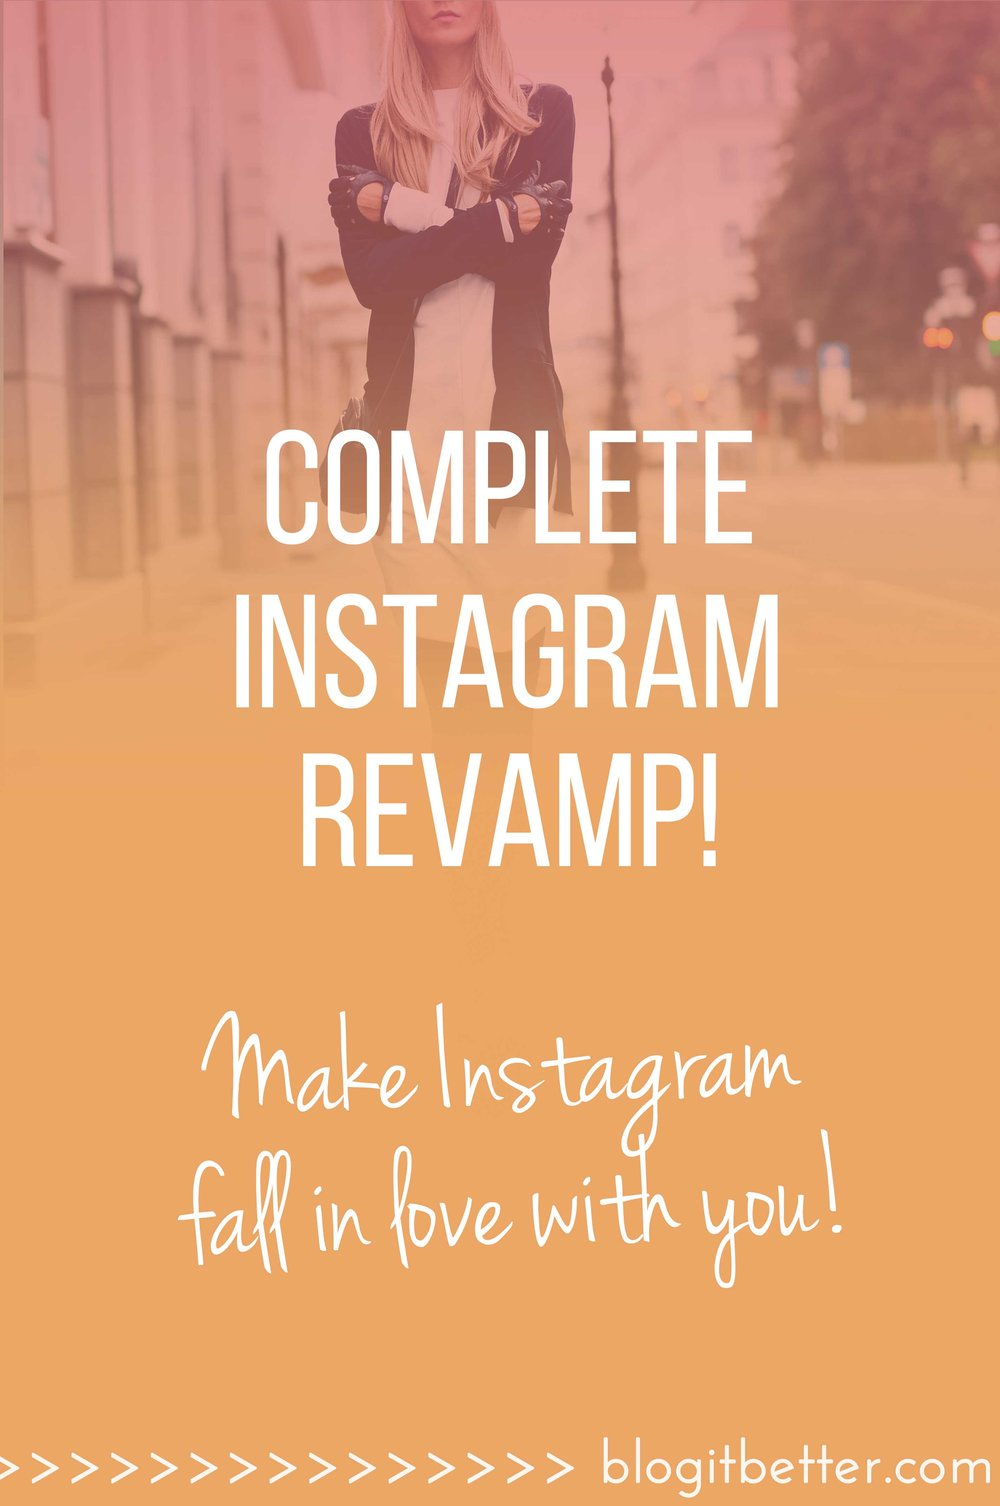 Totally transform your Instagram account and attract more followers & engagement than ever before